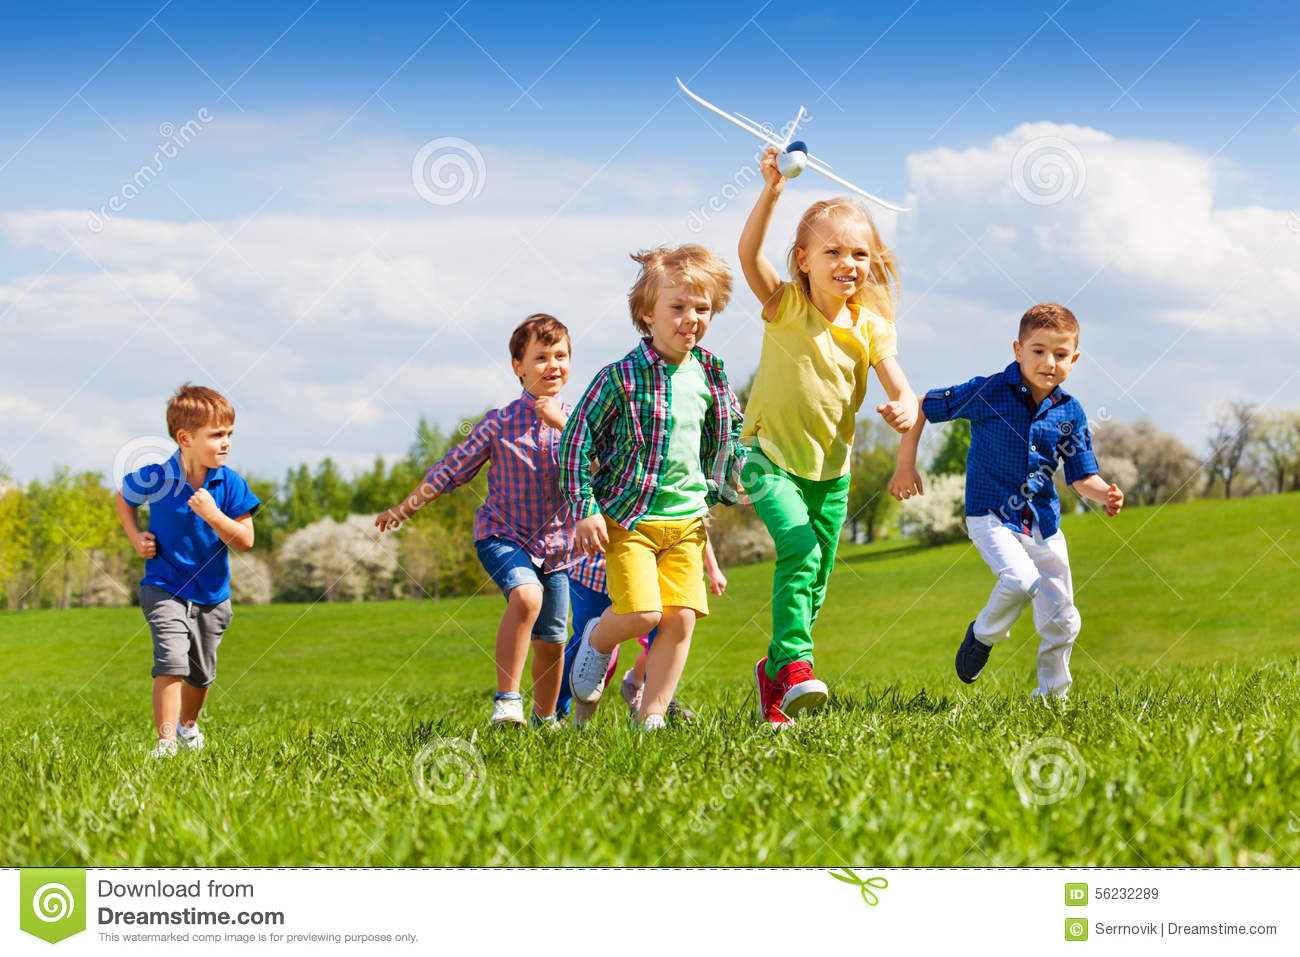 Group of happy running kids with white airplane